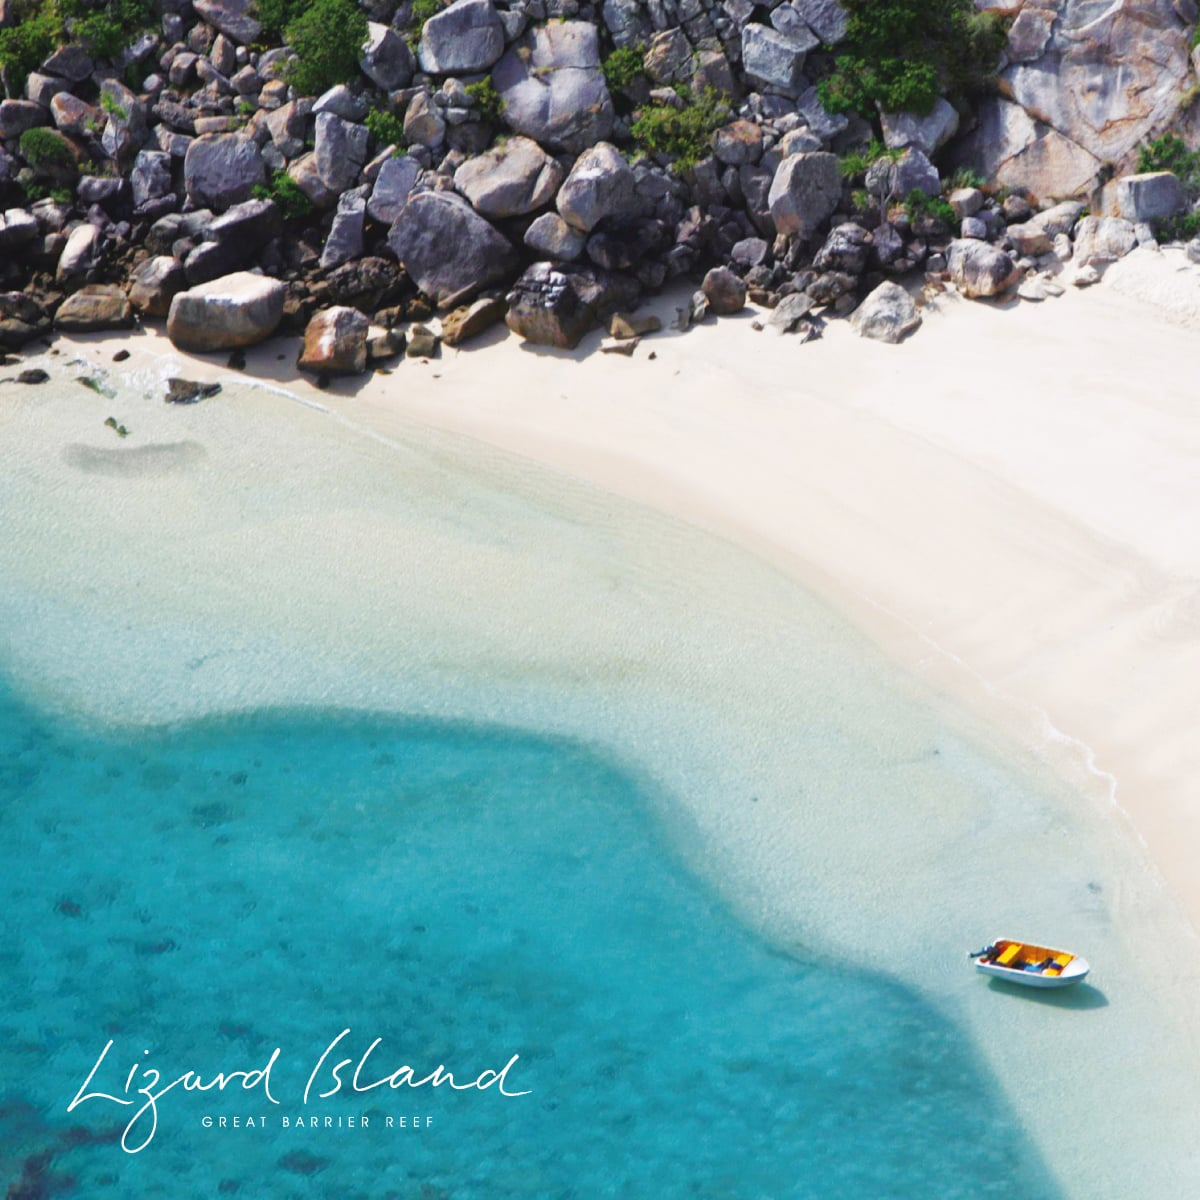 Davidson Branding Corporate Lizard Island Brand Identity Logo Design Water Photography